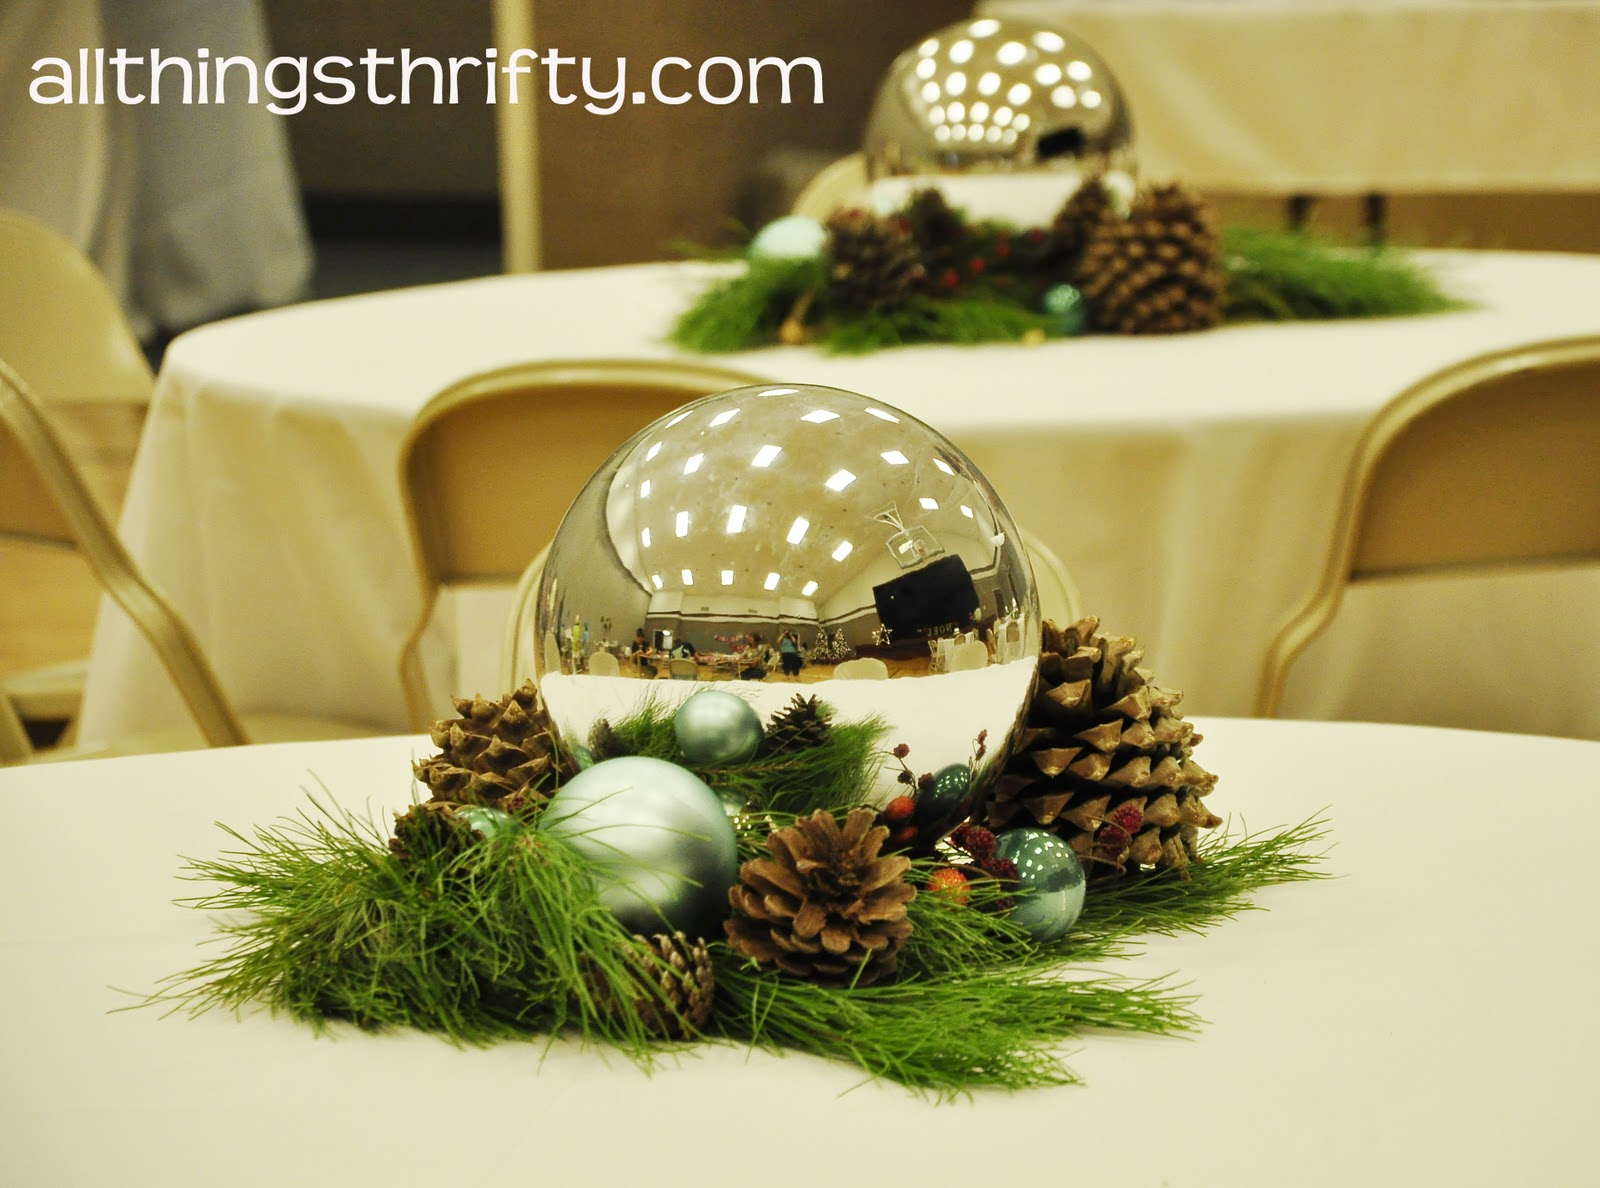 Summer clearance items ideas Small christmas centerpieces